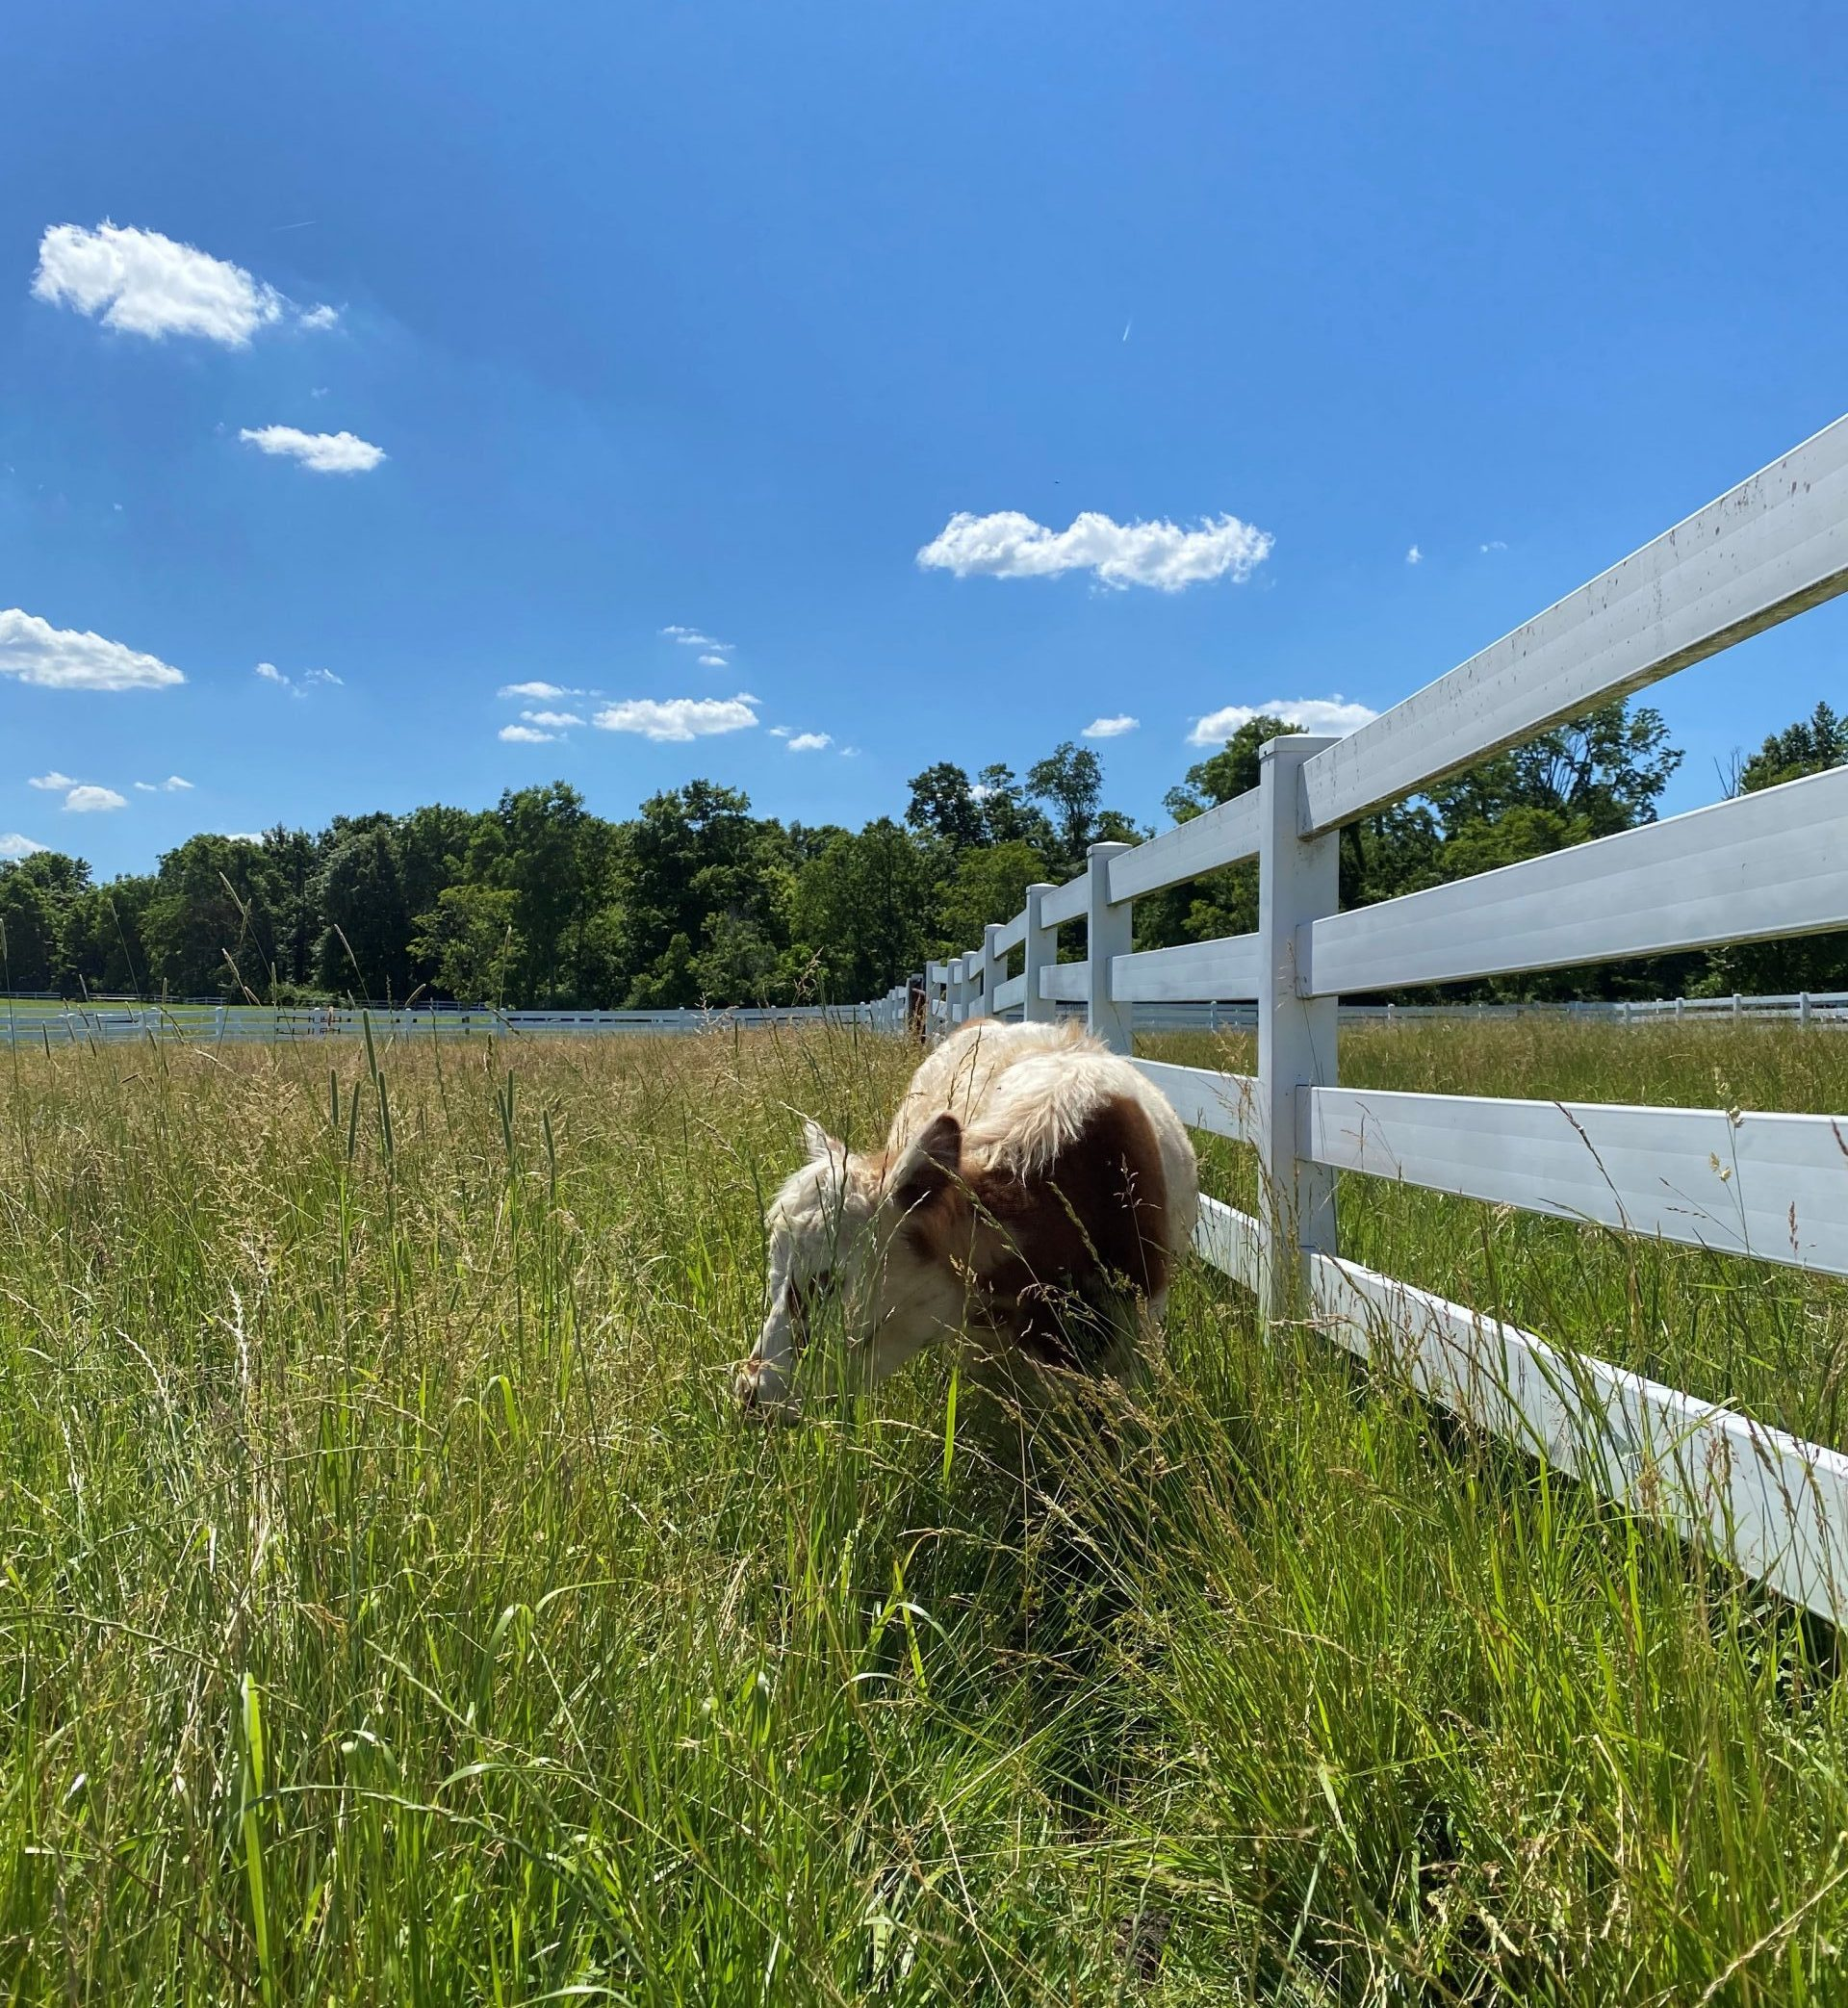 Gracie the mini-cow in her pasture at Parky's Farm.